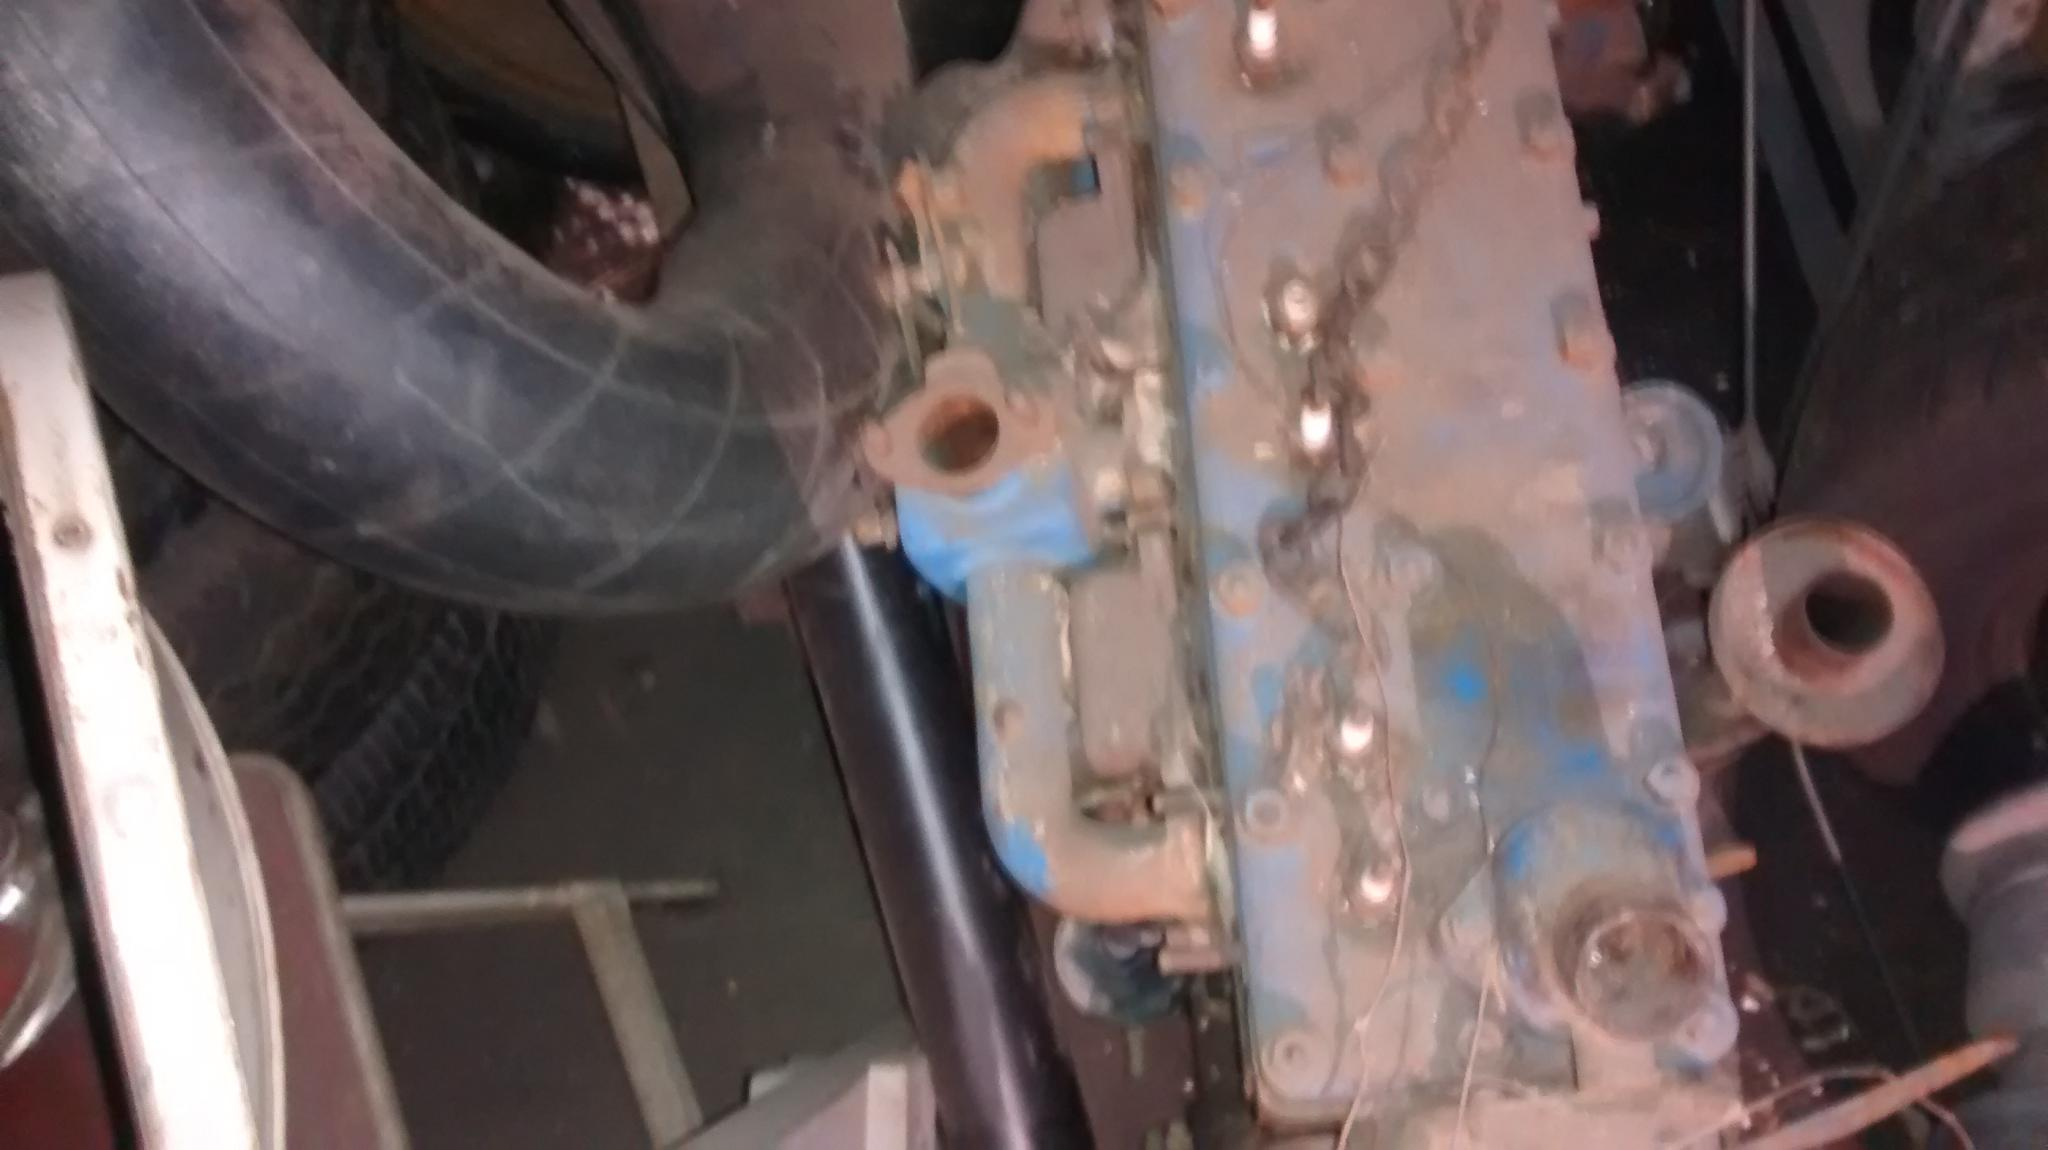 Wanted - 1934-38 Dodge intake and exhaust manifold - Parts